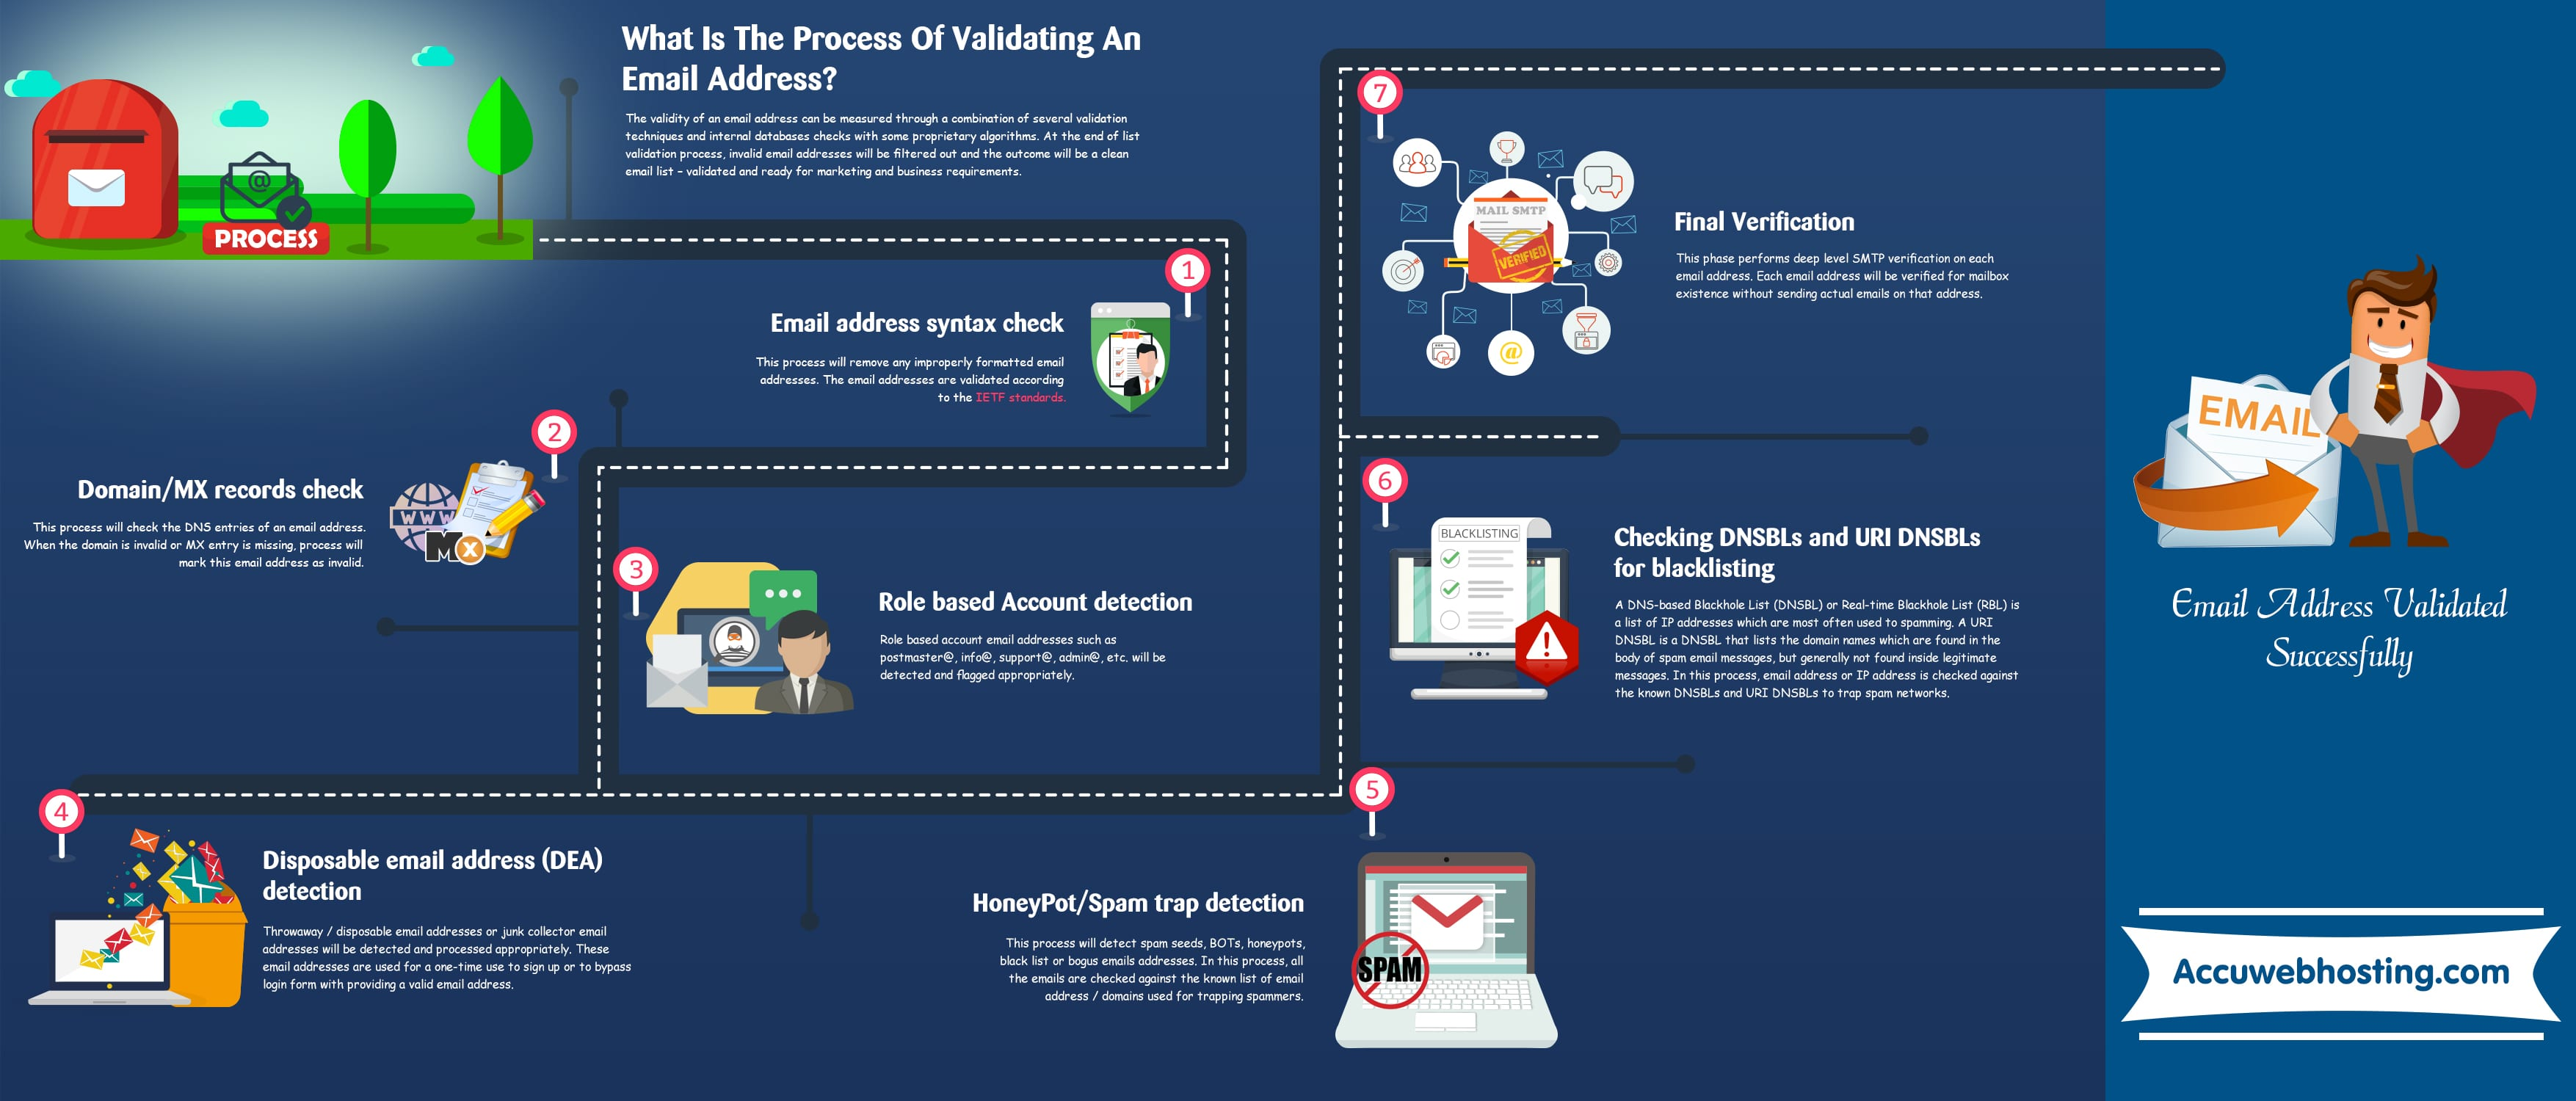 The Process Of Validating An Email Address